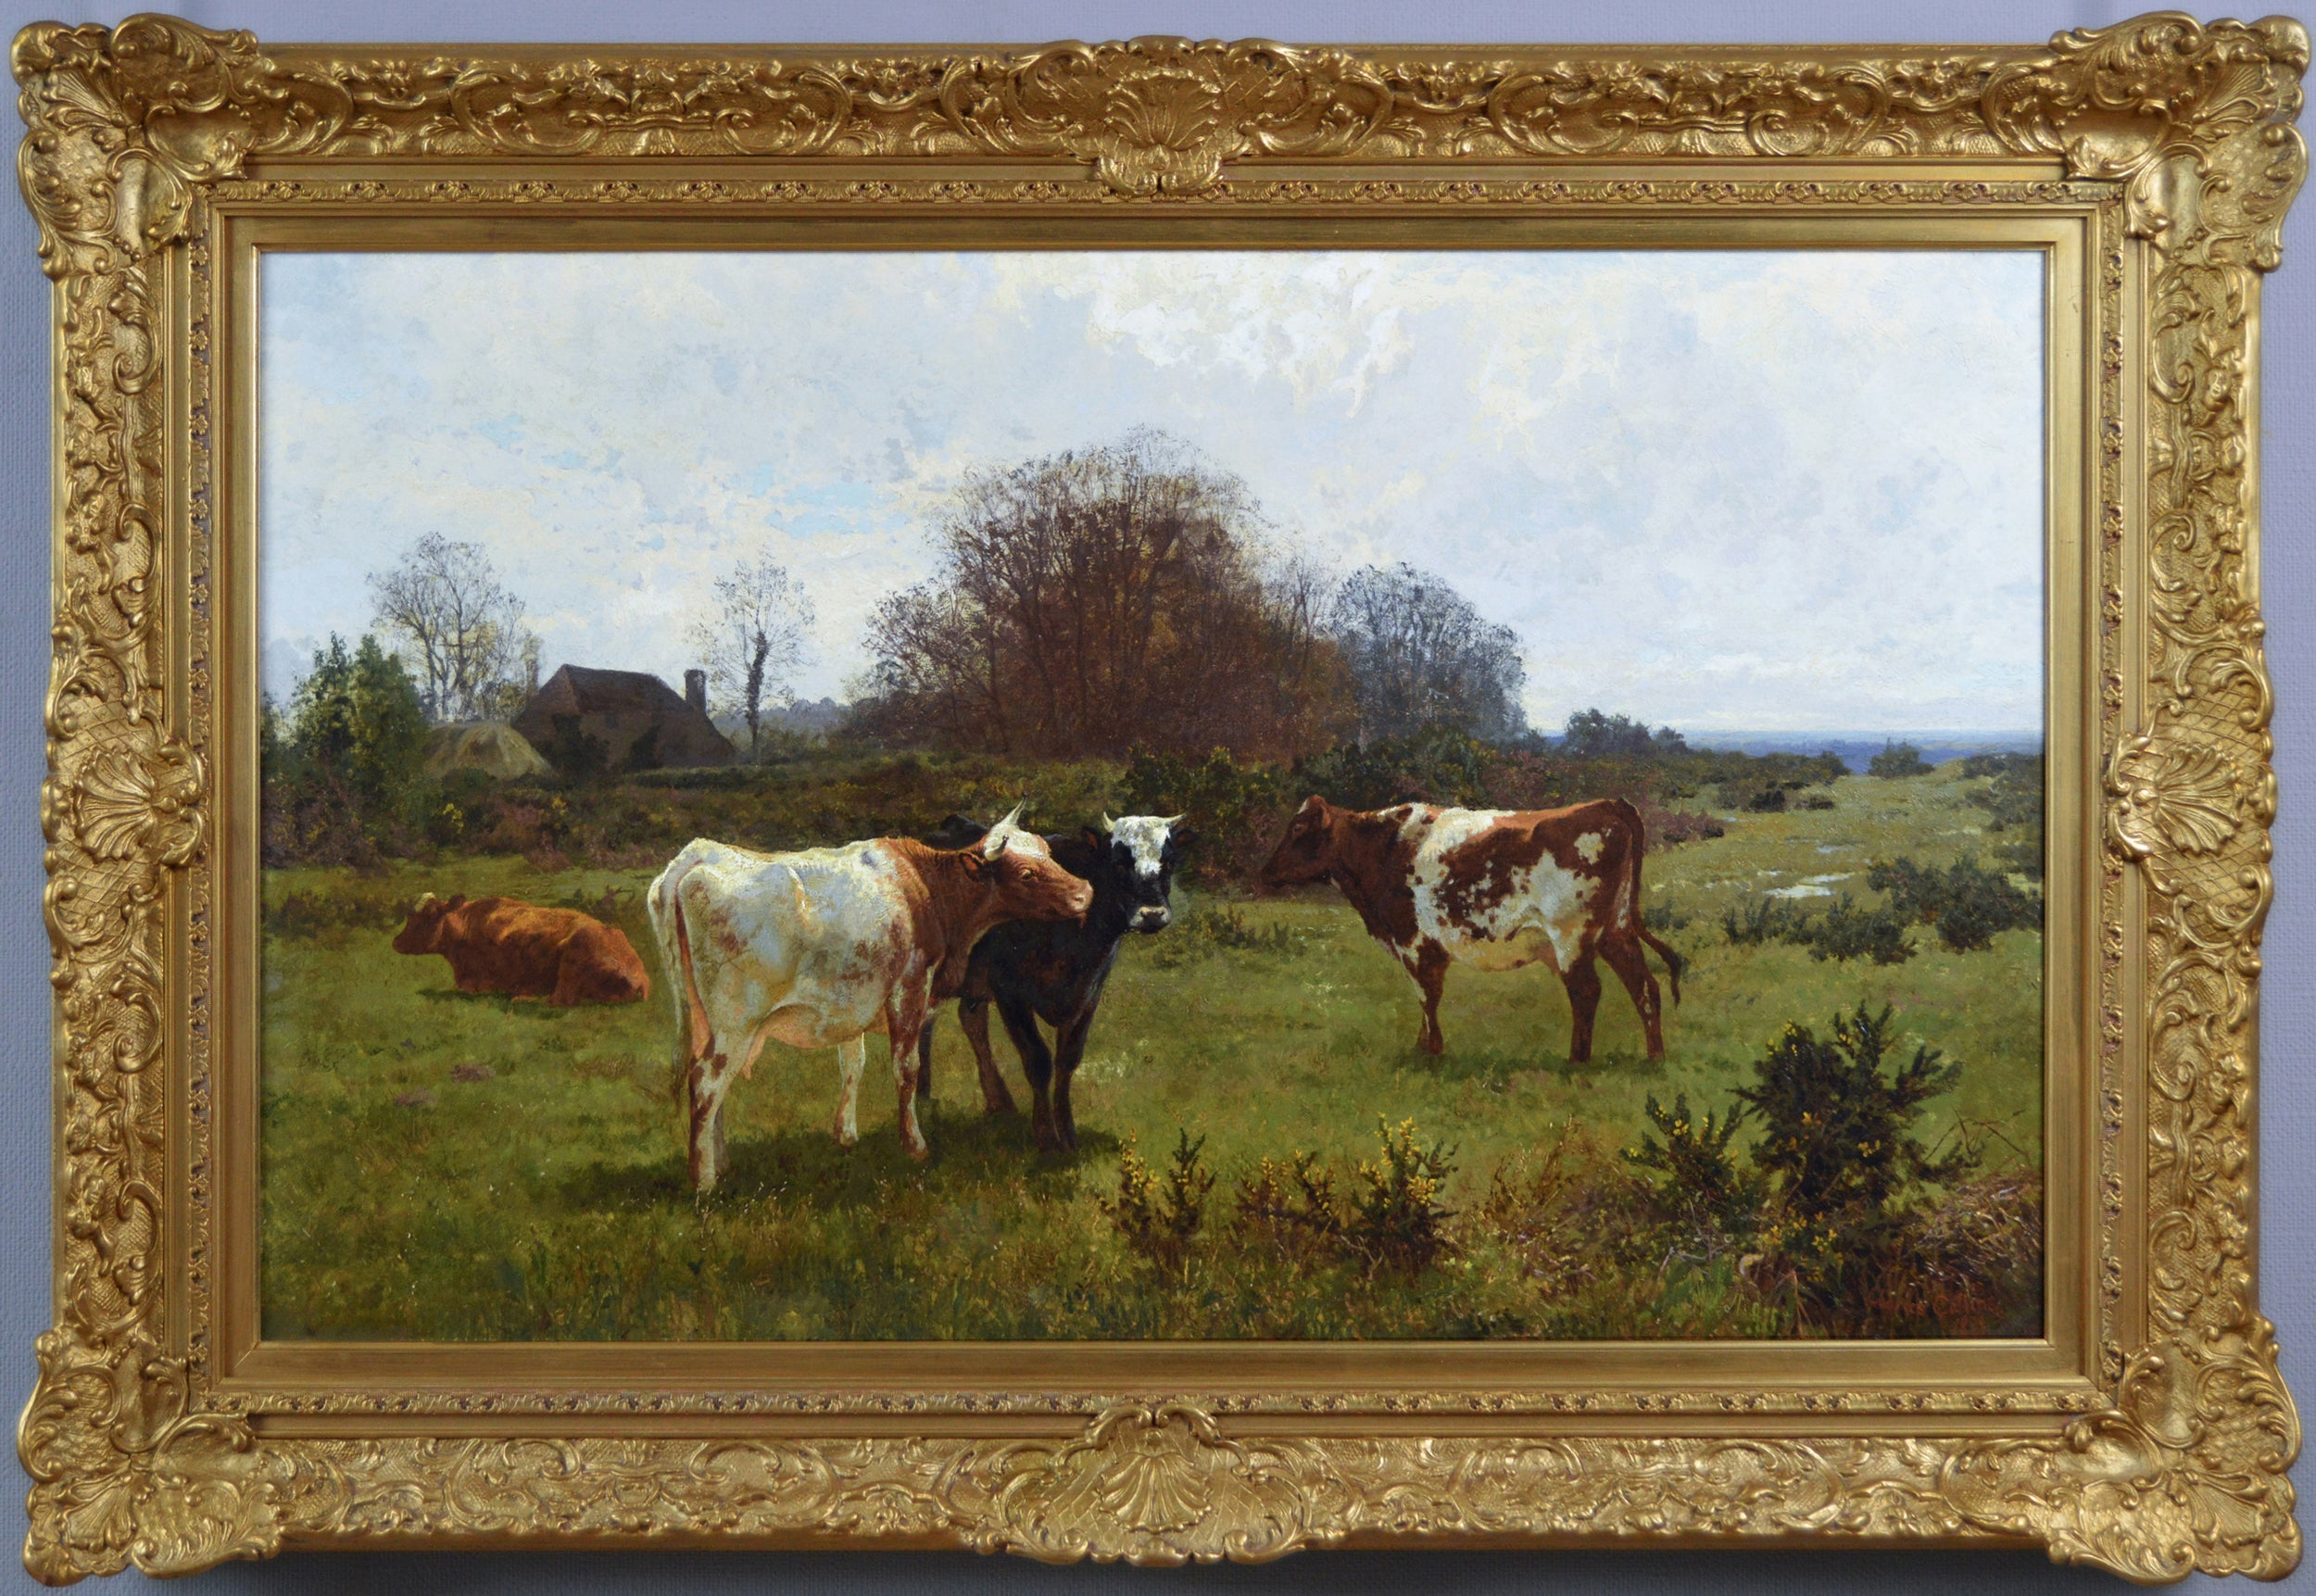 19th Century landscape oil painting of cattle grazing